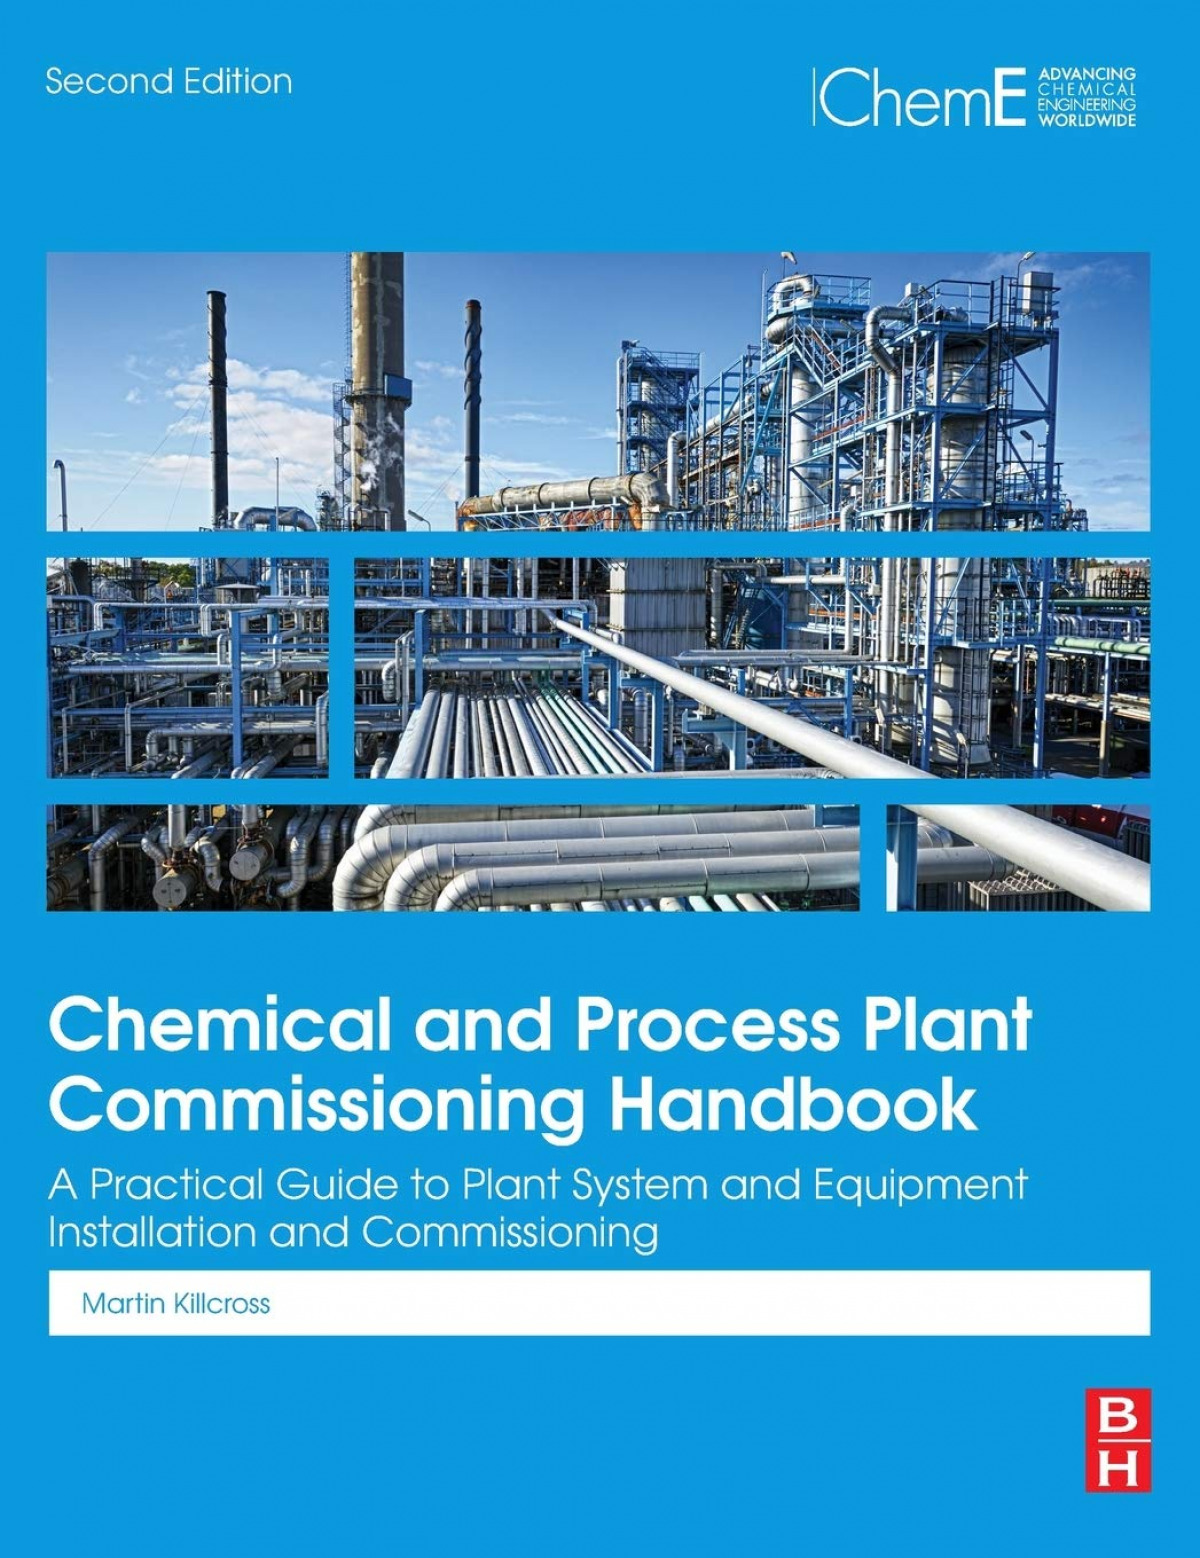 CHEMICAL PROCESS PLANT COMMISSIONING HANDBOOK 2ND.EDITION